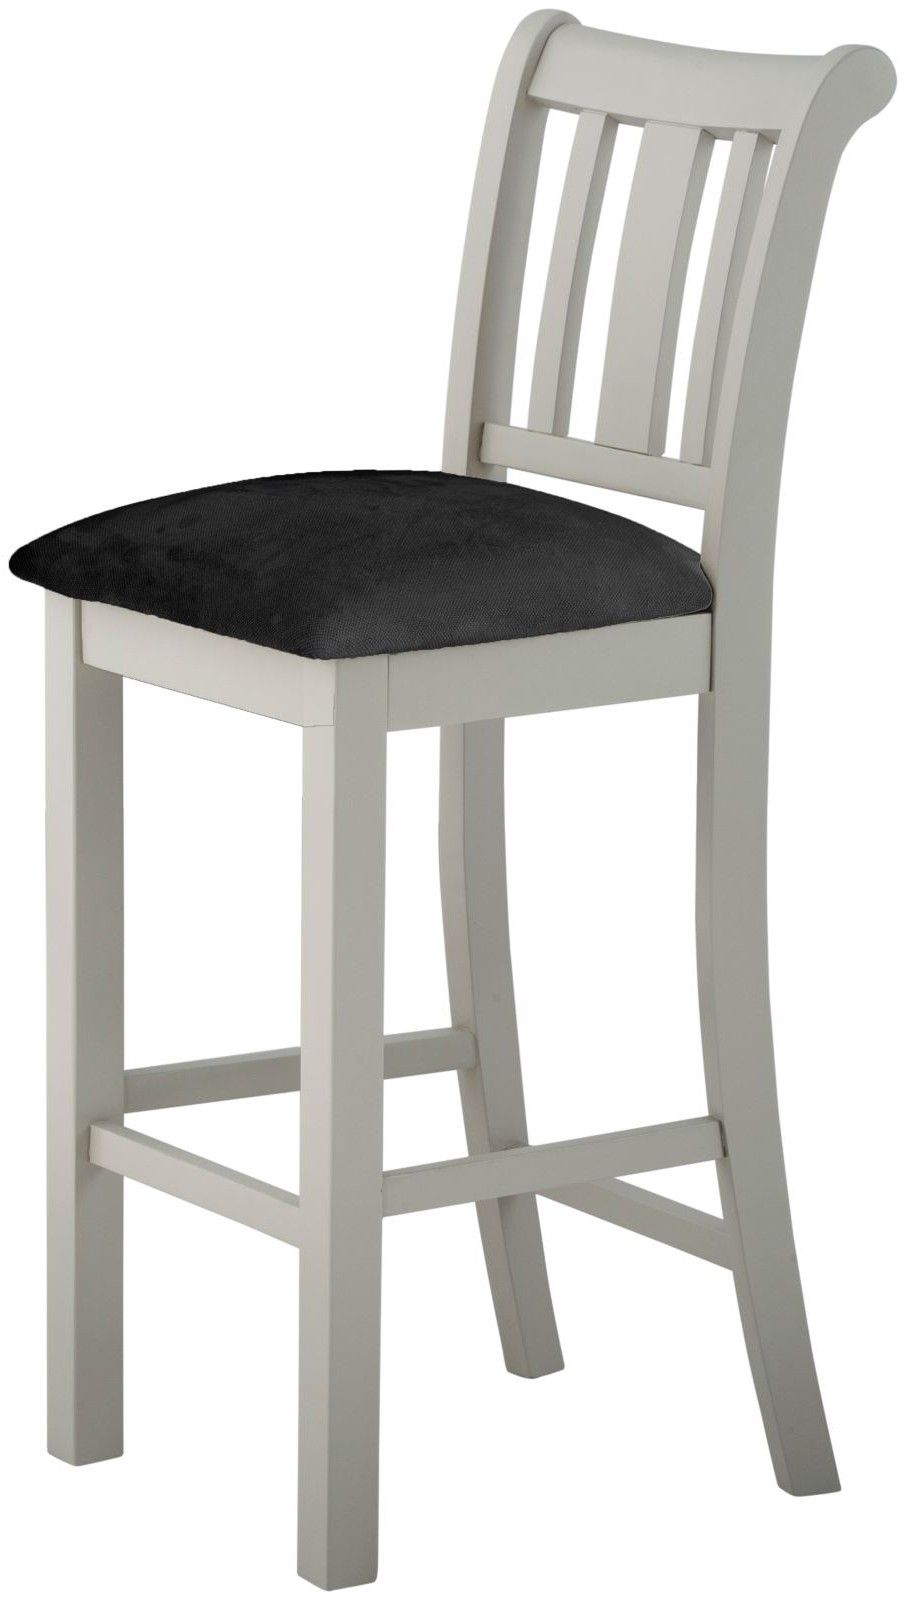 Purbeck Painted Bar Stool